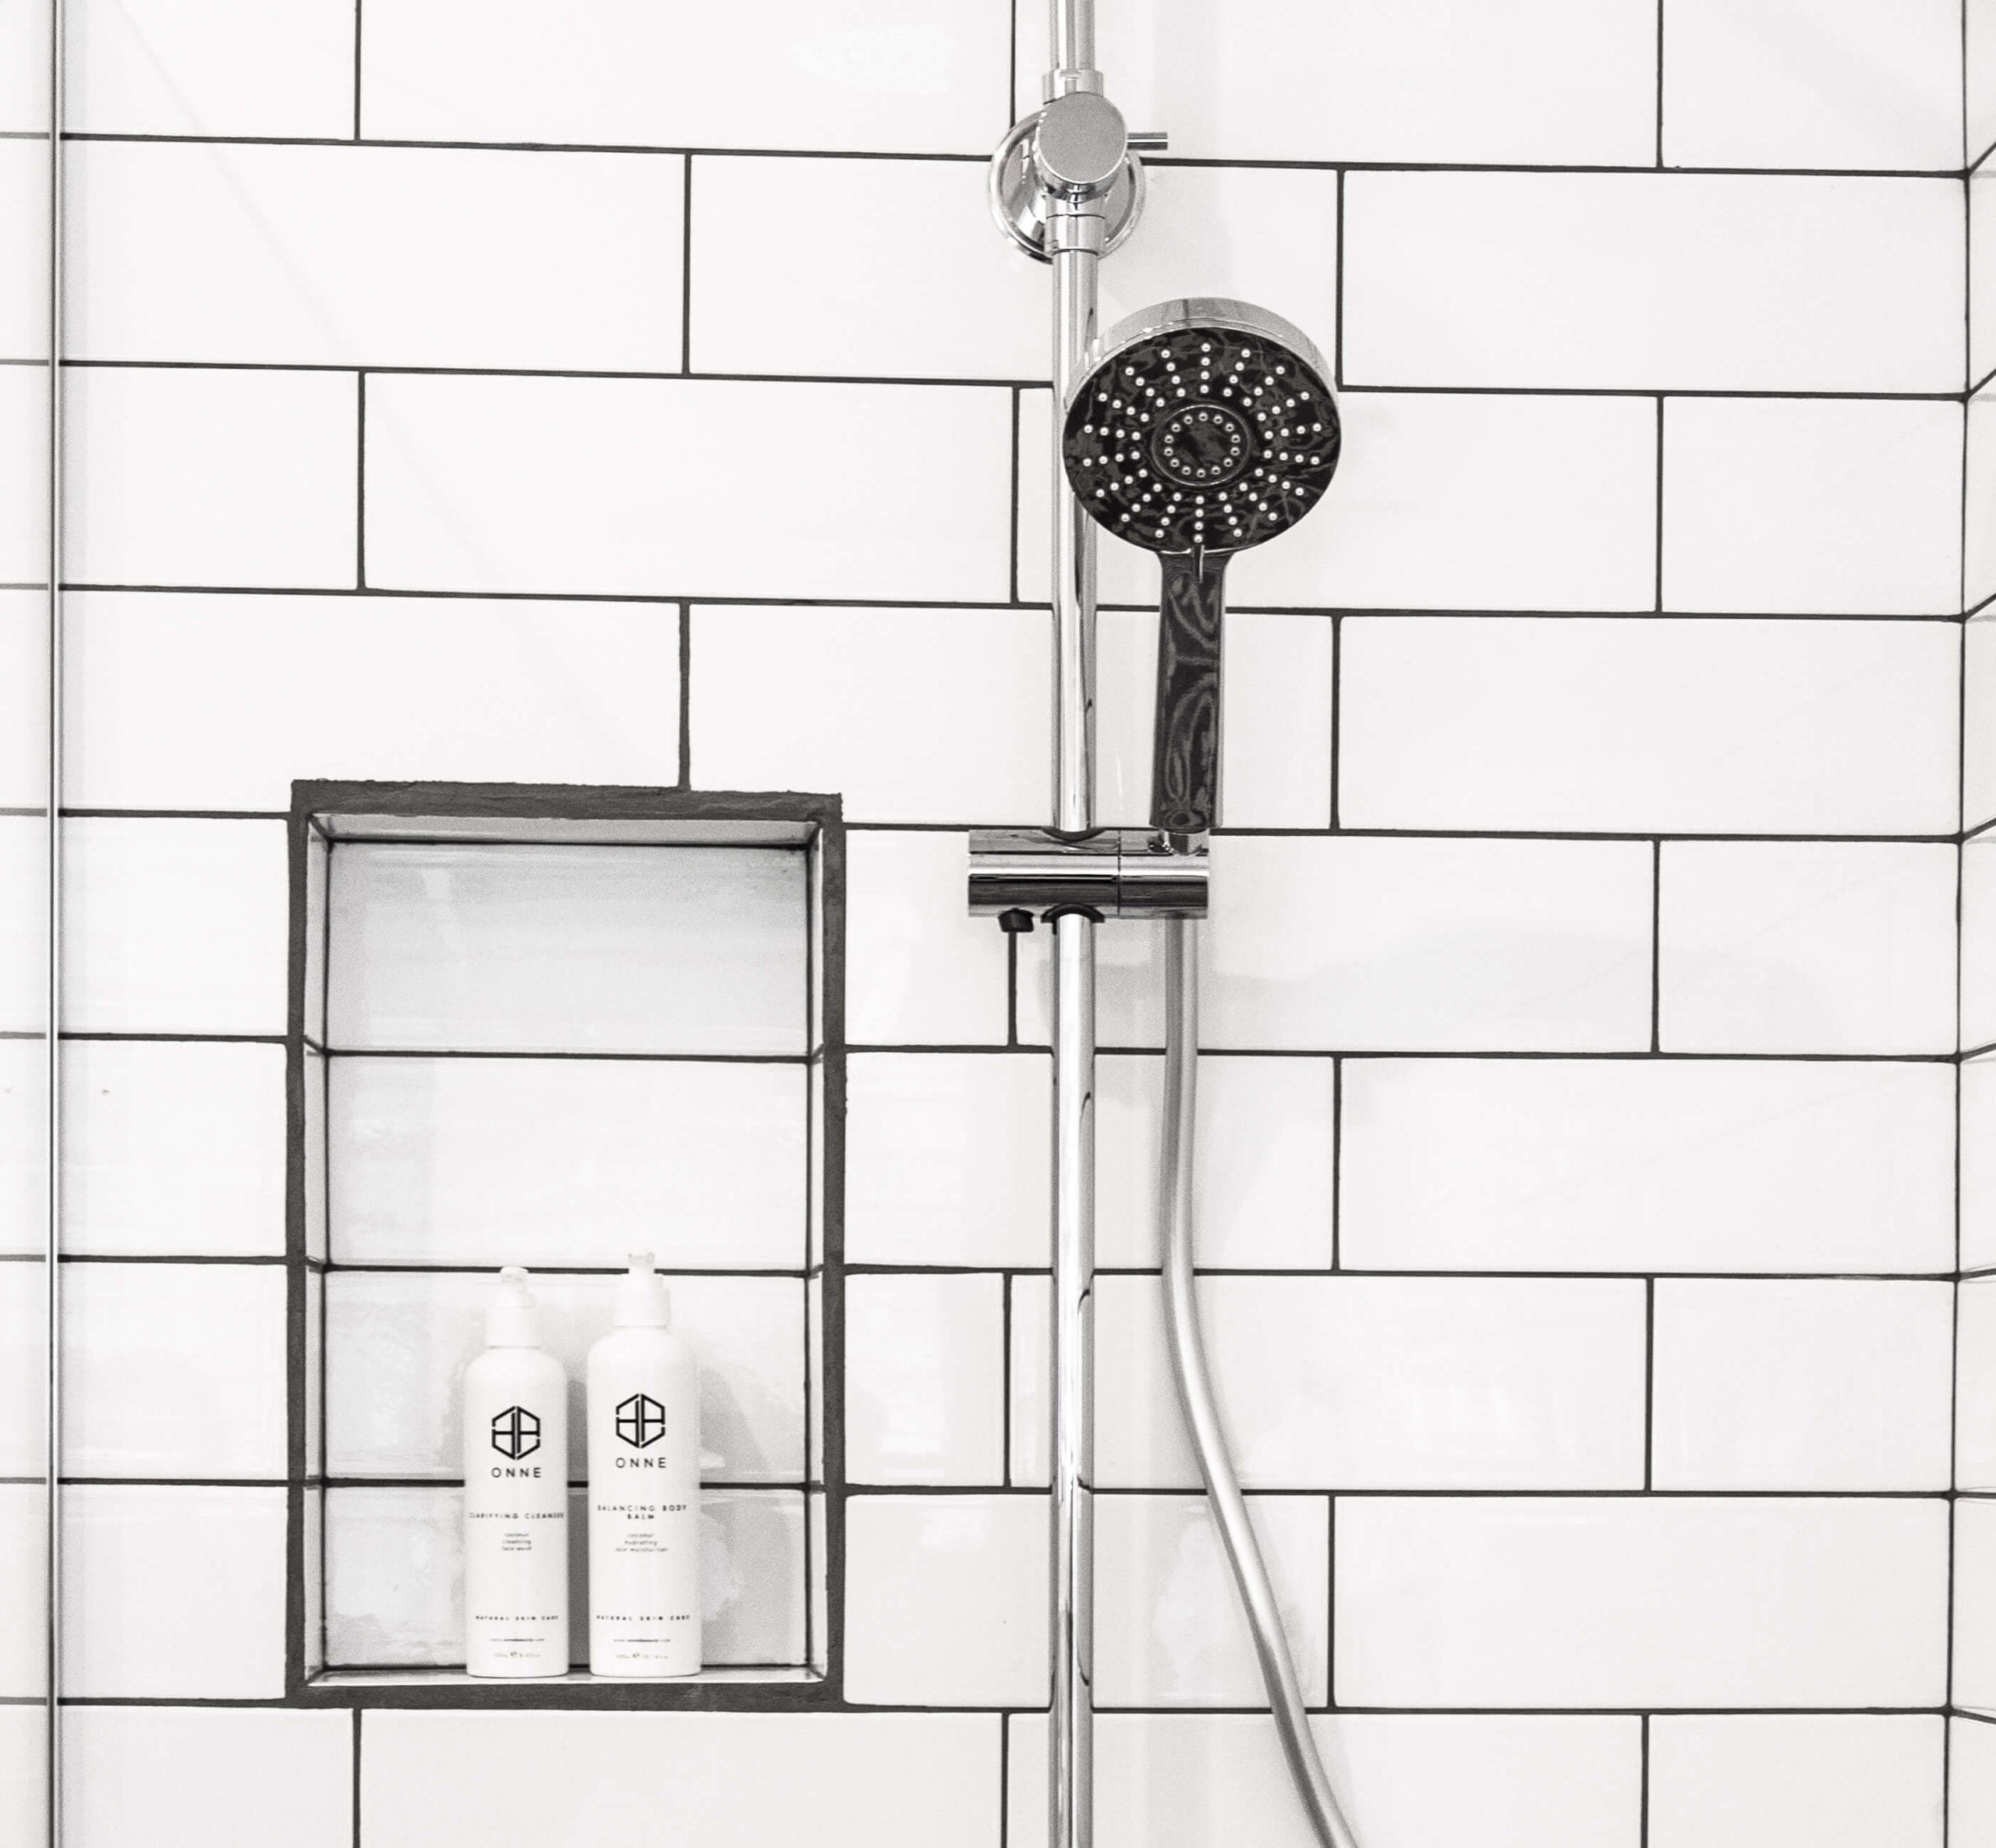 new shower head for rental property